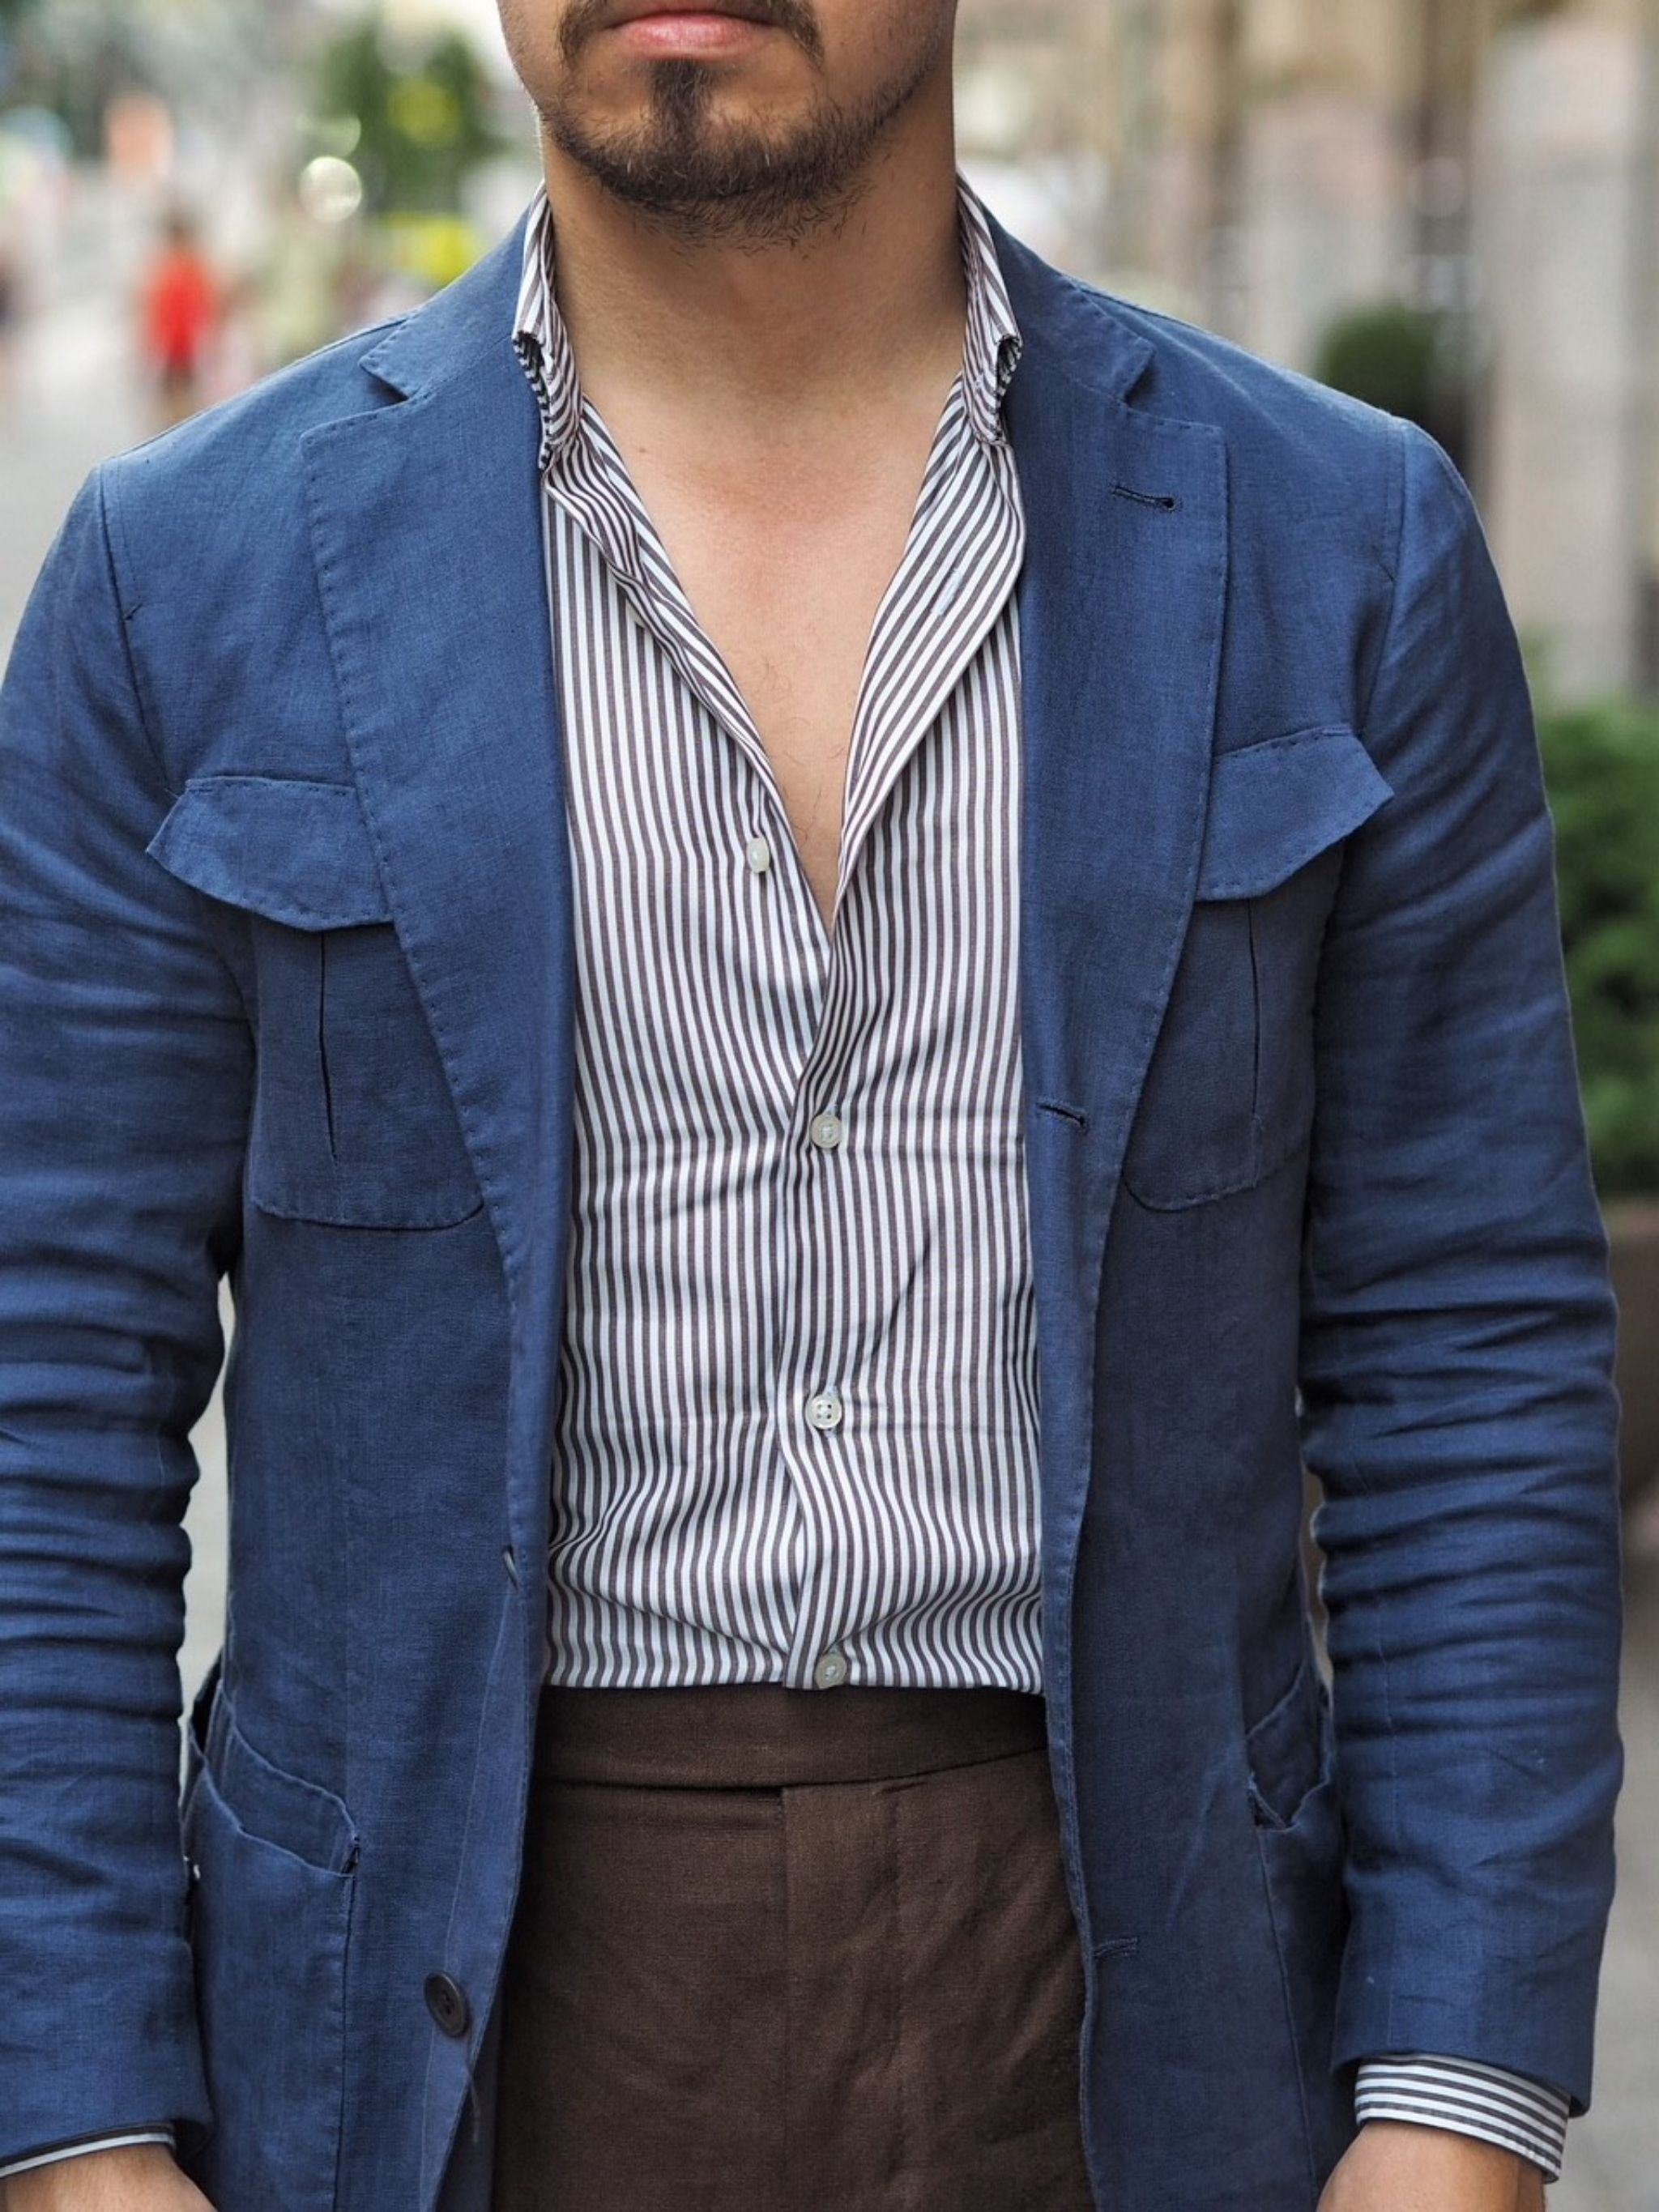 Brown linen suit trousers with striped shirt and navy jacket details